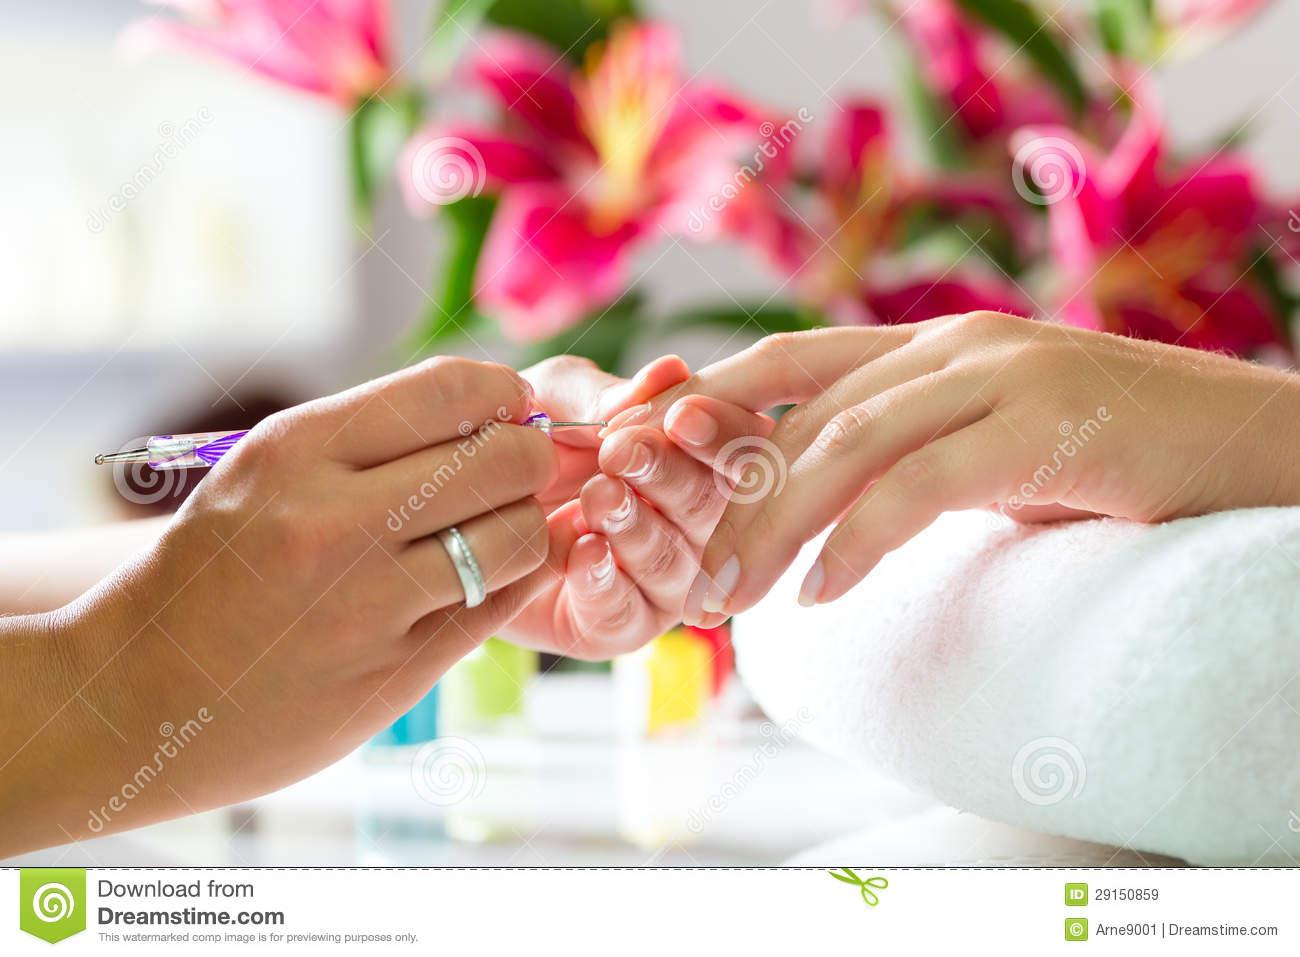 Woman In Nail Salon Receiving Manicure Stock Image - Image of rose ...